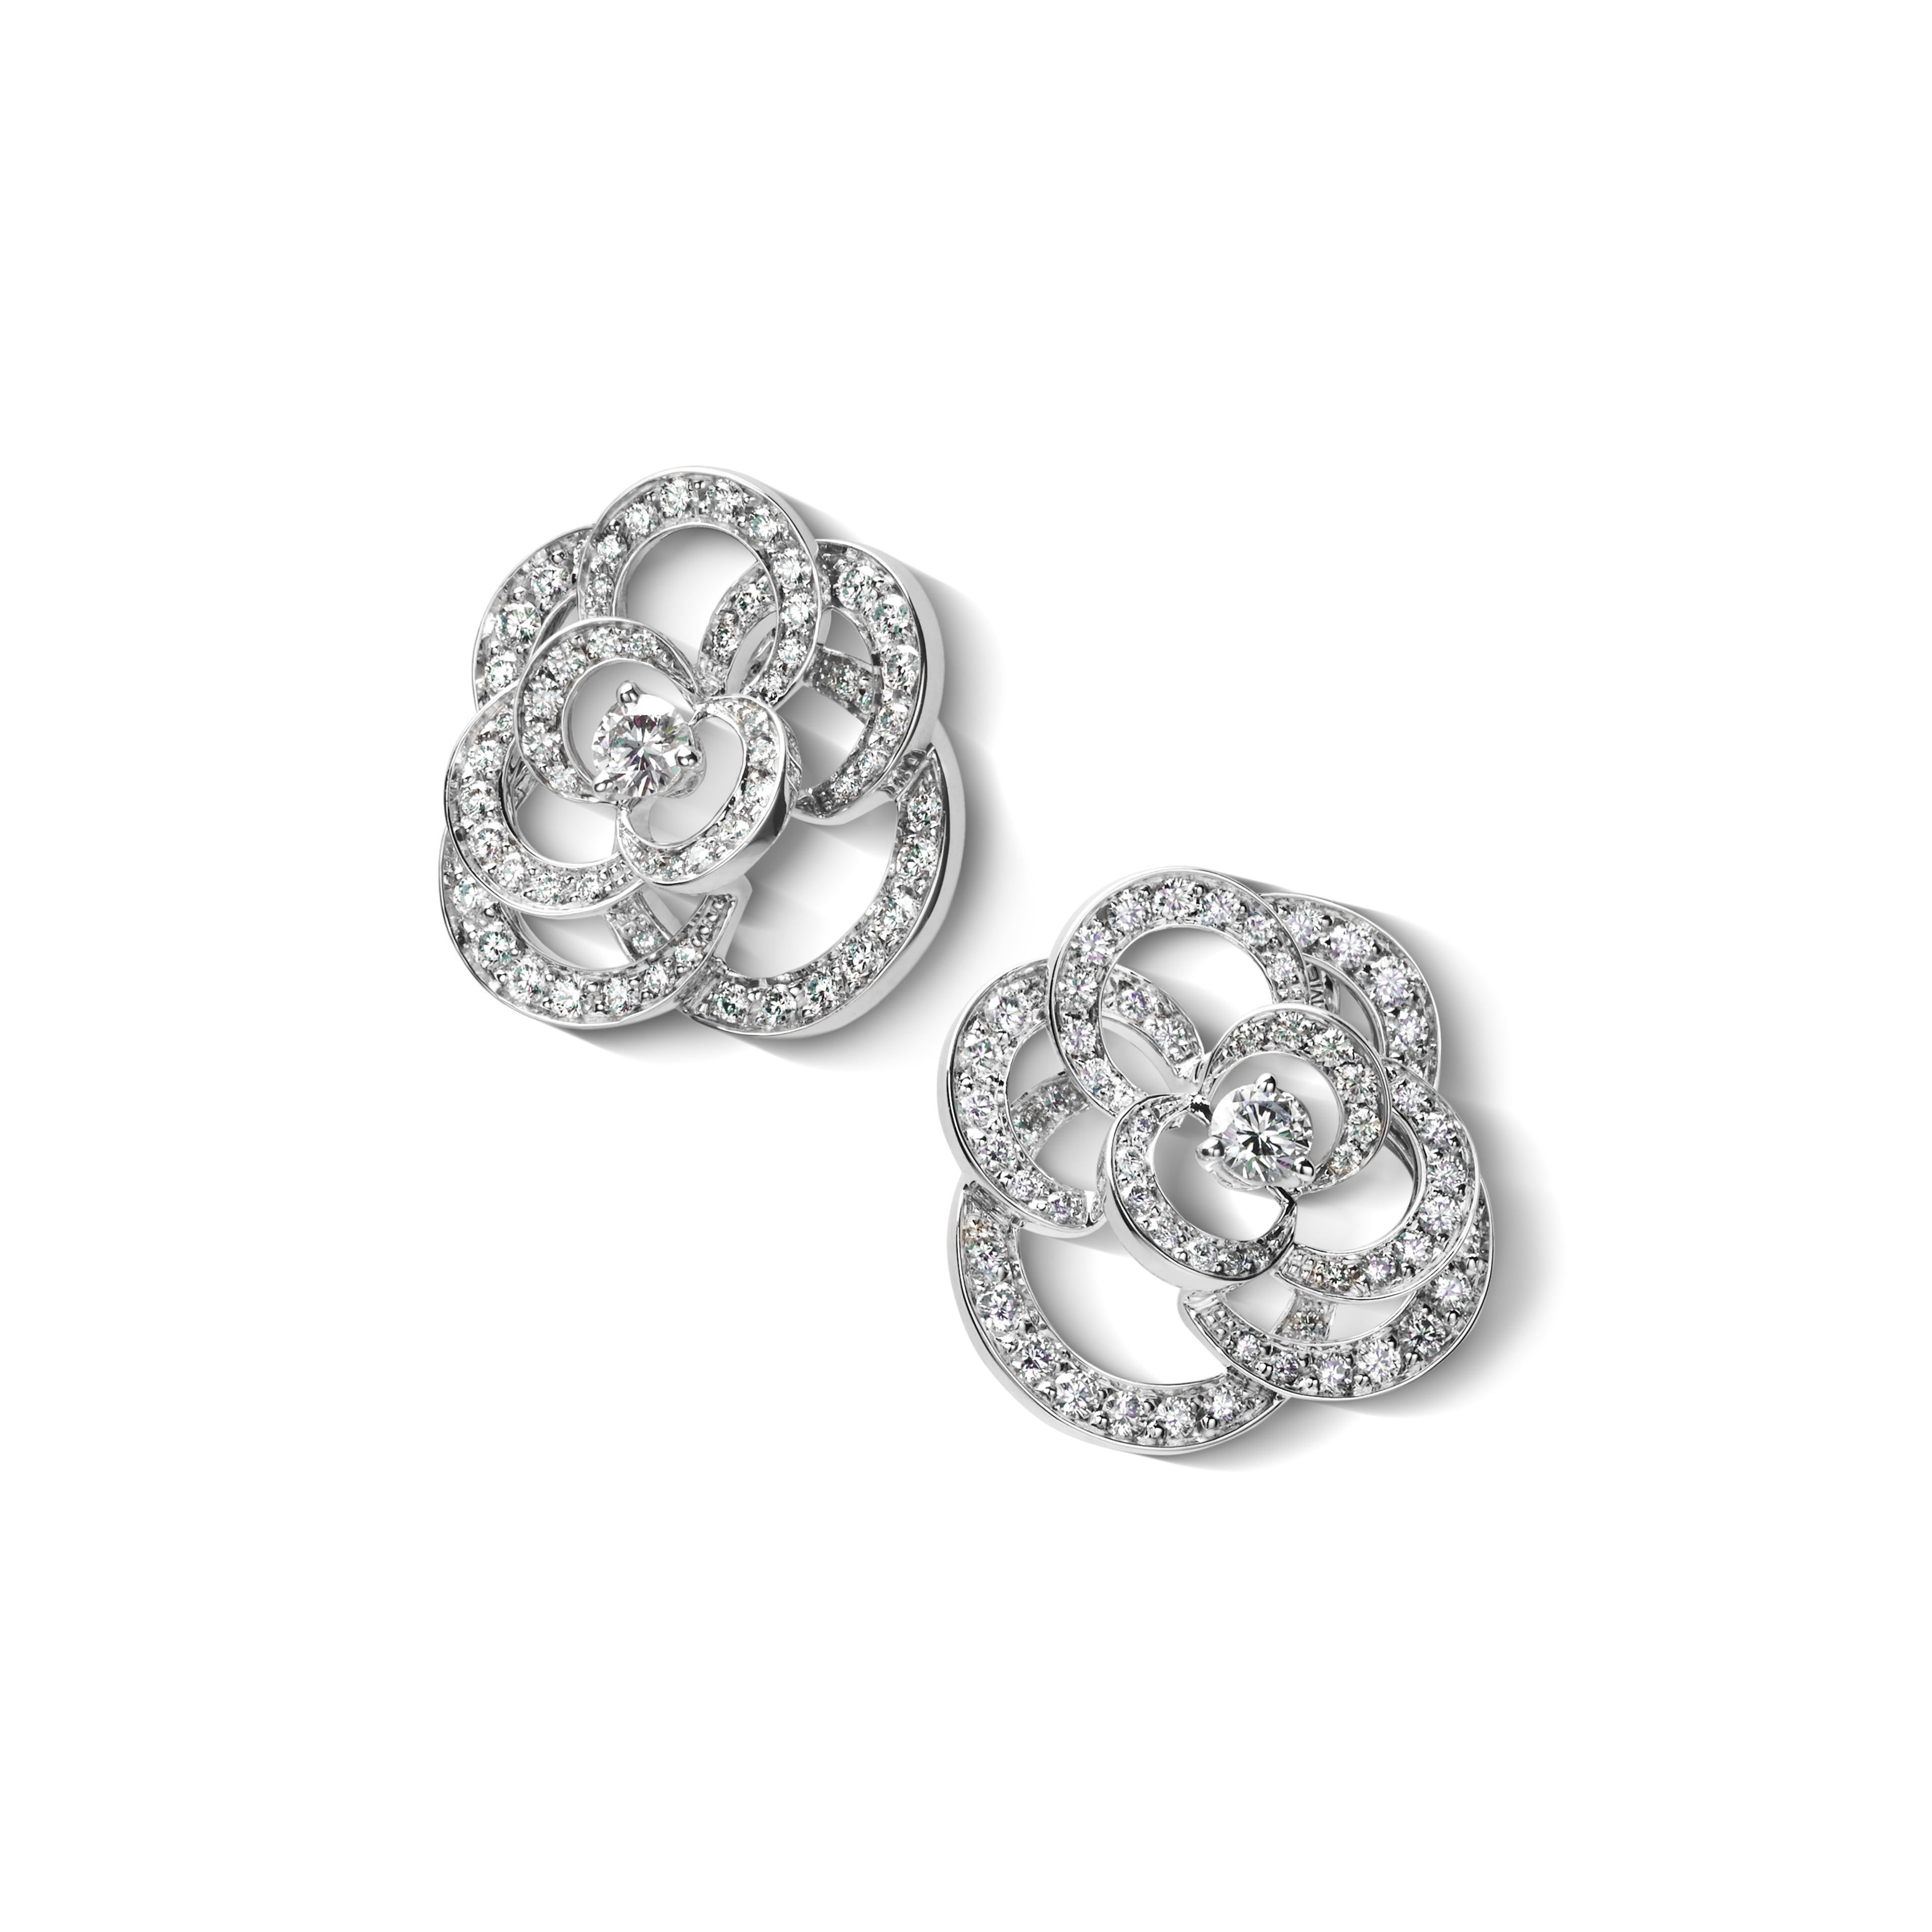 620f4d5a23d362 Camélia earrings - Fil de Camélia earrings in 18K white gold and diamonds  with one center diamond - Default view - see full sized version